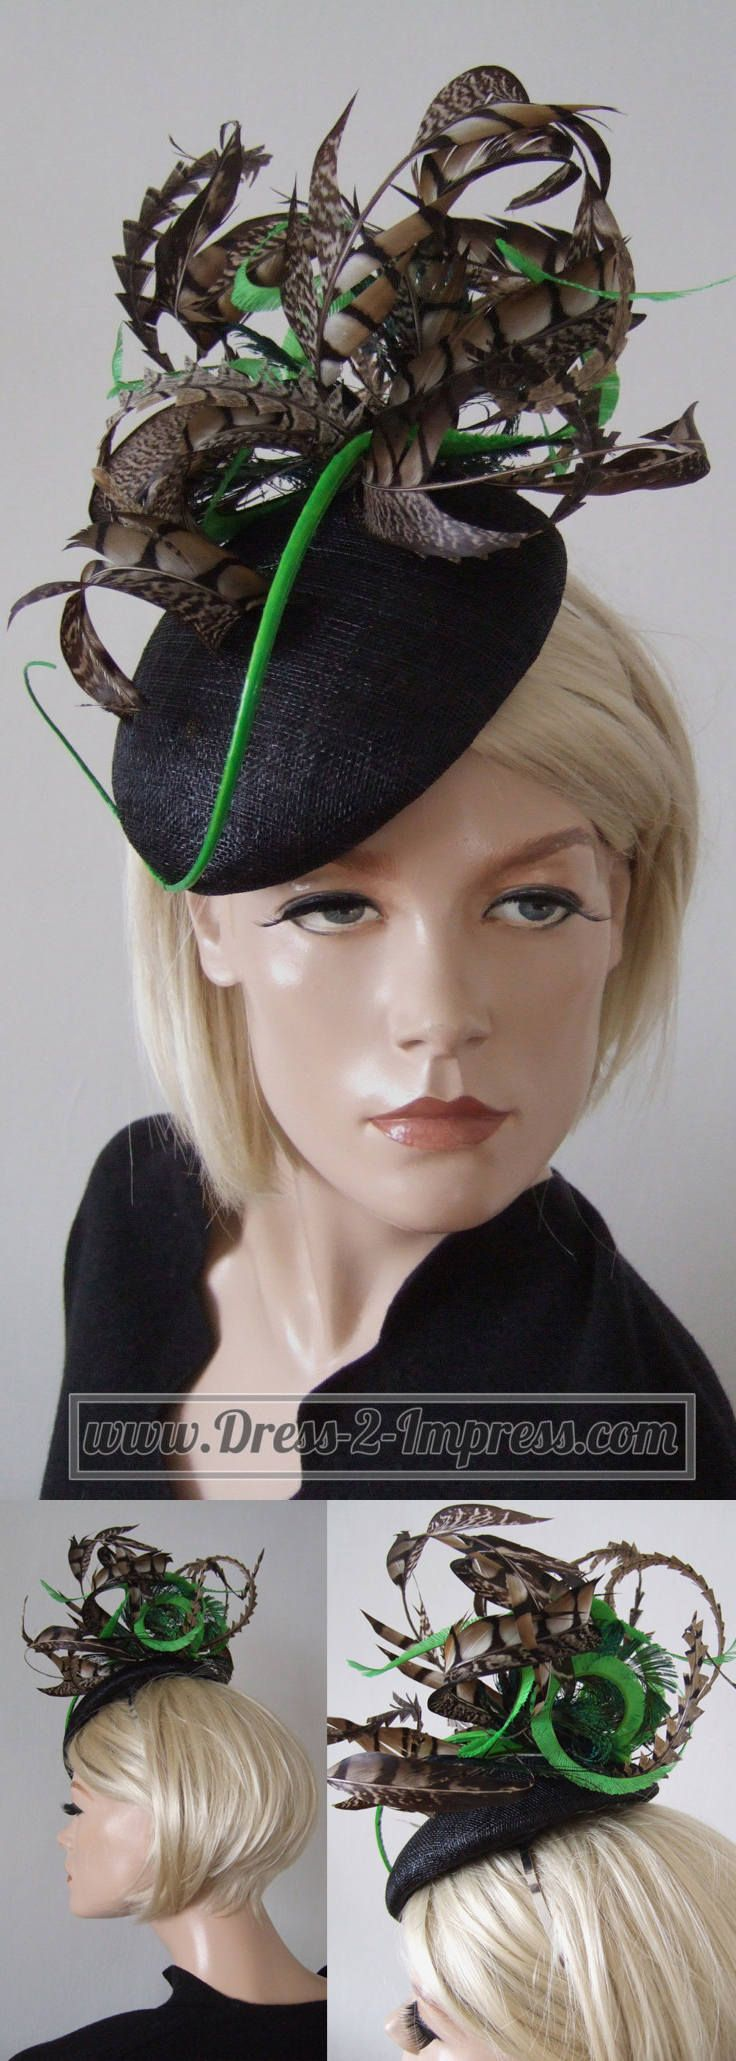 Black Green and Brown Amherst Pheasant Feathered Beret Headpiece Hat. Great fascinator for winter mother of the bride hat, with Pheasant, Peacock and Ostrich feathers. Winter Race Day Fashion. Can customise the accent colour to colours of your choice to match your outfit. Made with Love, Handmade in the UK. #peacock #pheasant #fashion #racingfashion #fashionista #fashionaddict #etsy #handmade #madeintheuk #madewithlove